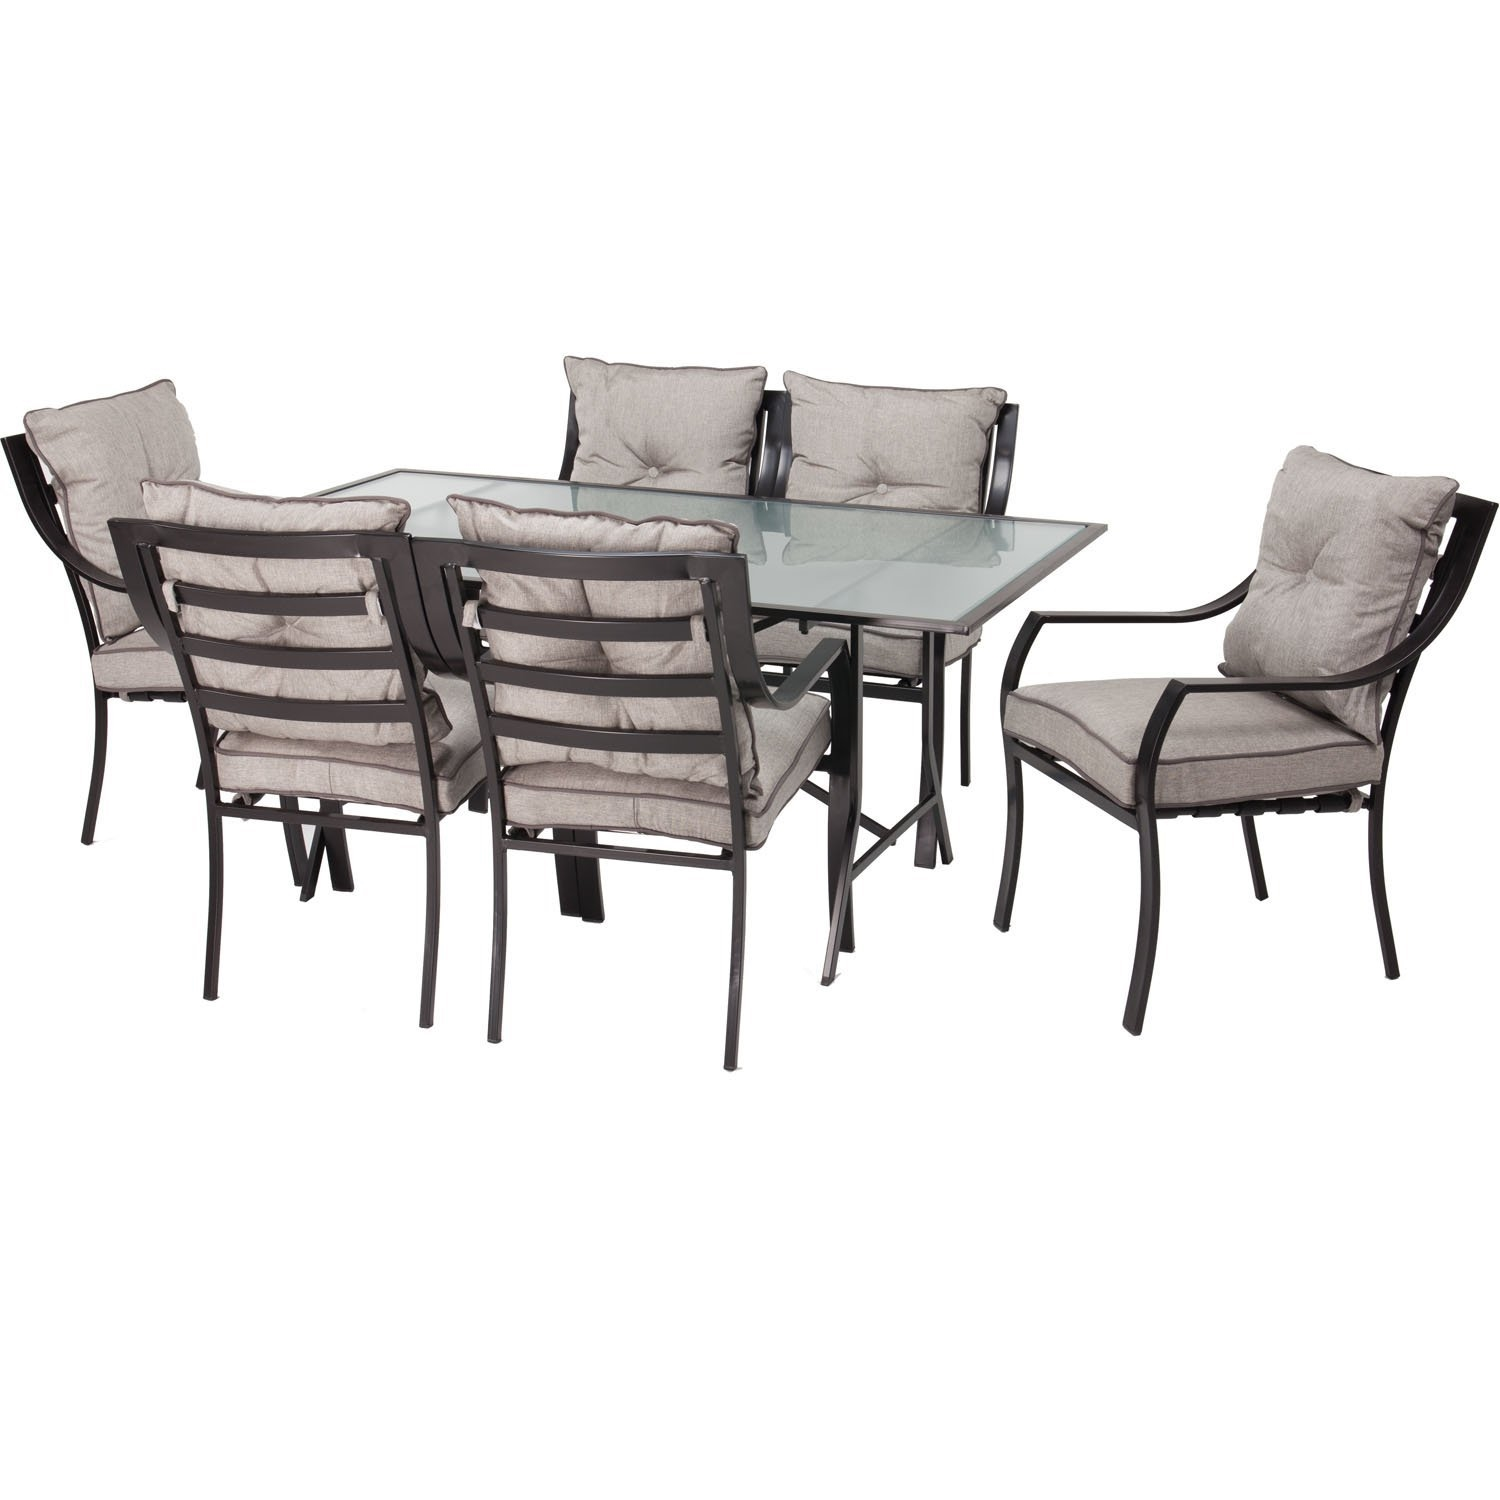 10 Piece Outdoor Patio Furniture Metal Dining Set with Cushions